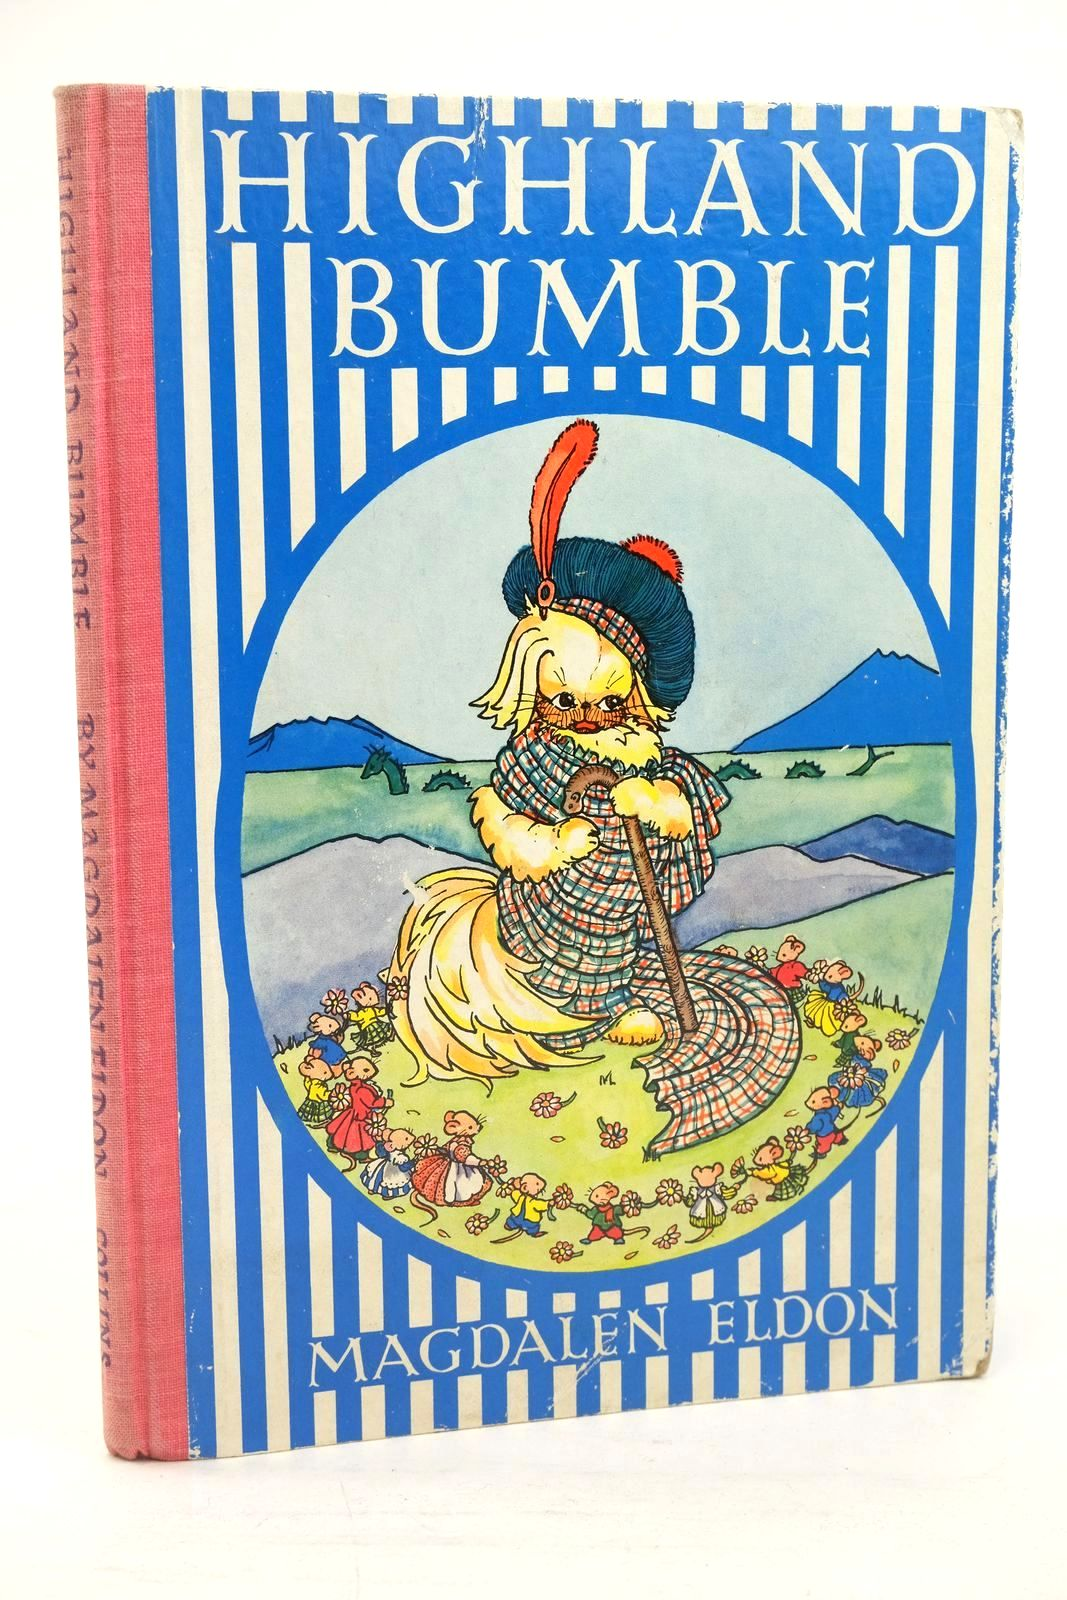 Photo of HIGHLAND BUMBLE written by Eldon, Magdalen illustrated by Eldon, Magdalen published by Collins (STOCK CODE: 1319978)  for sale by Stella & Rose's Books